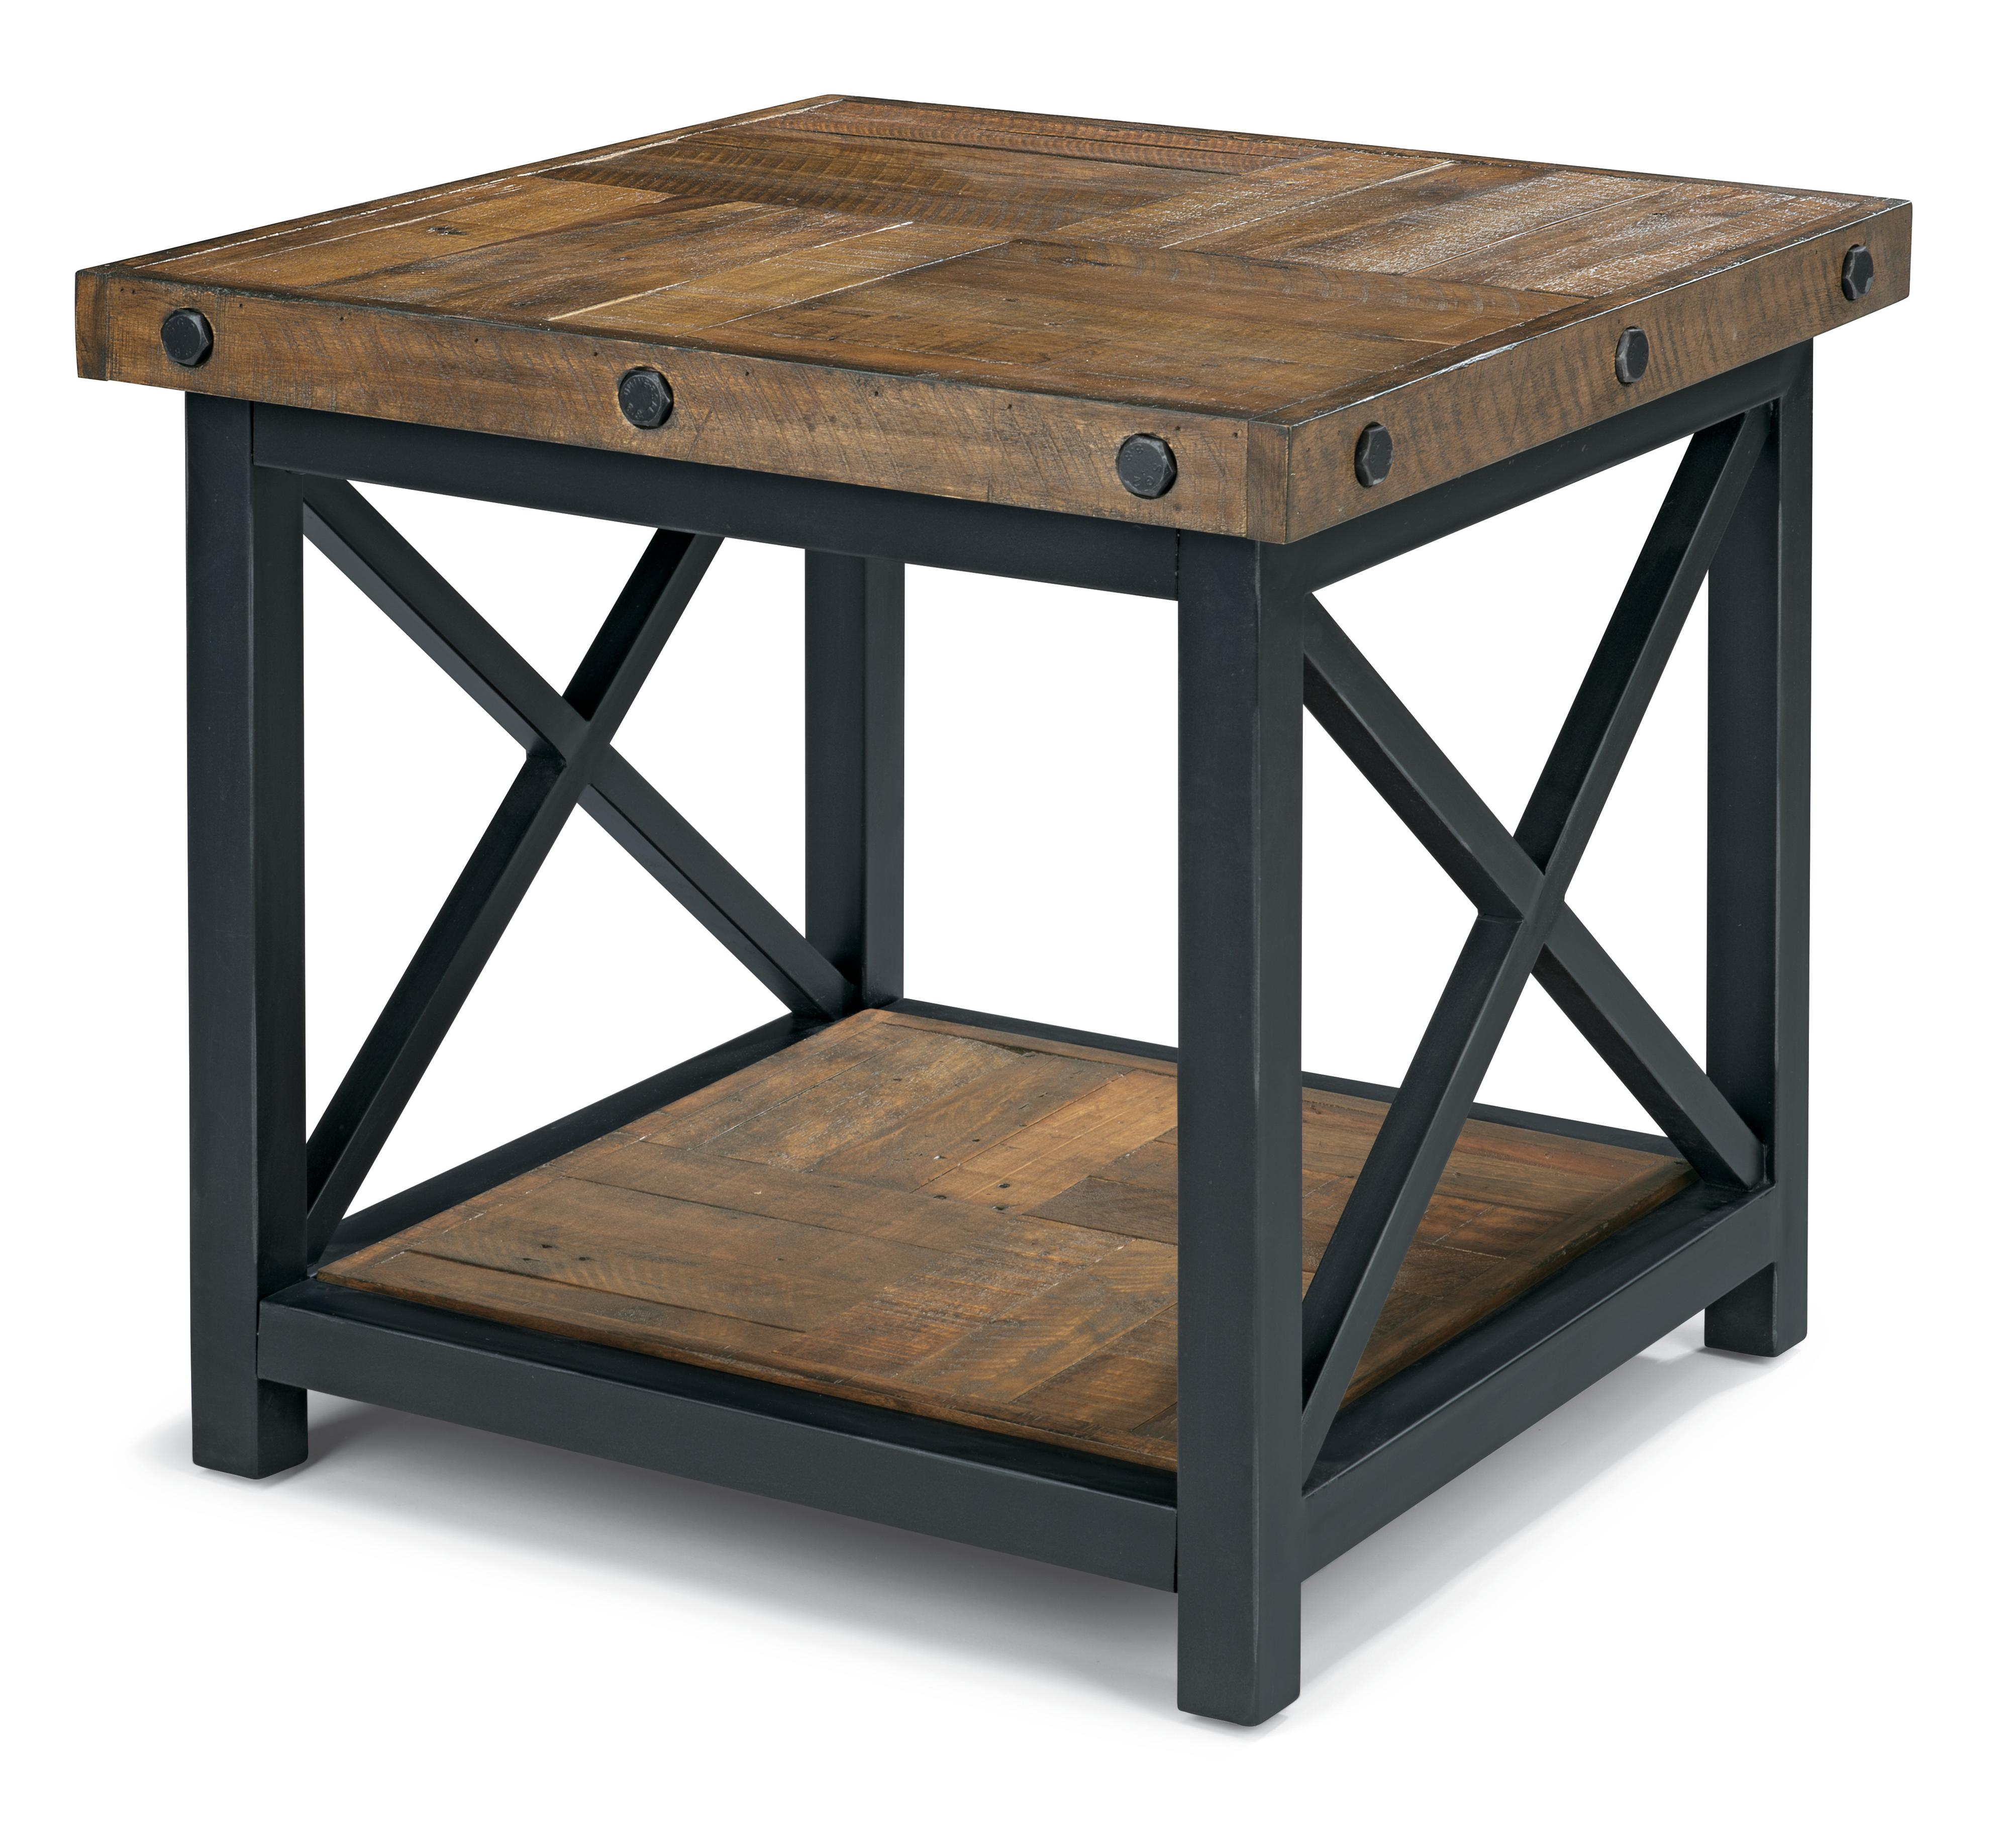 Square End Table with Wood Plank Top by Flexsteel